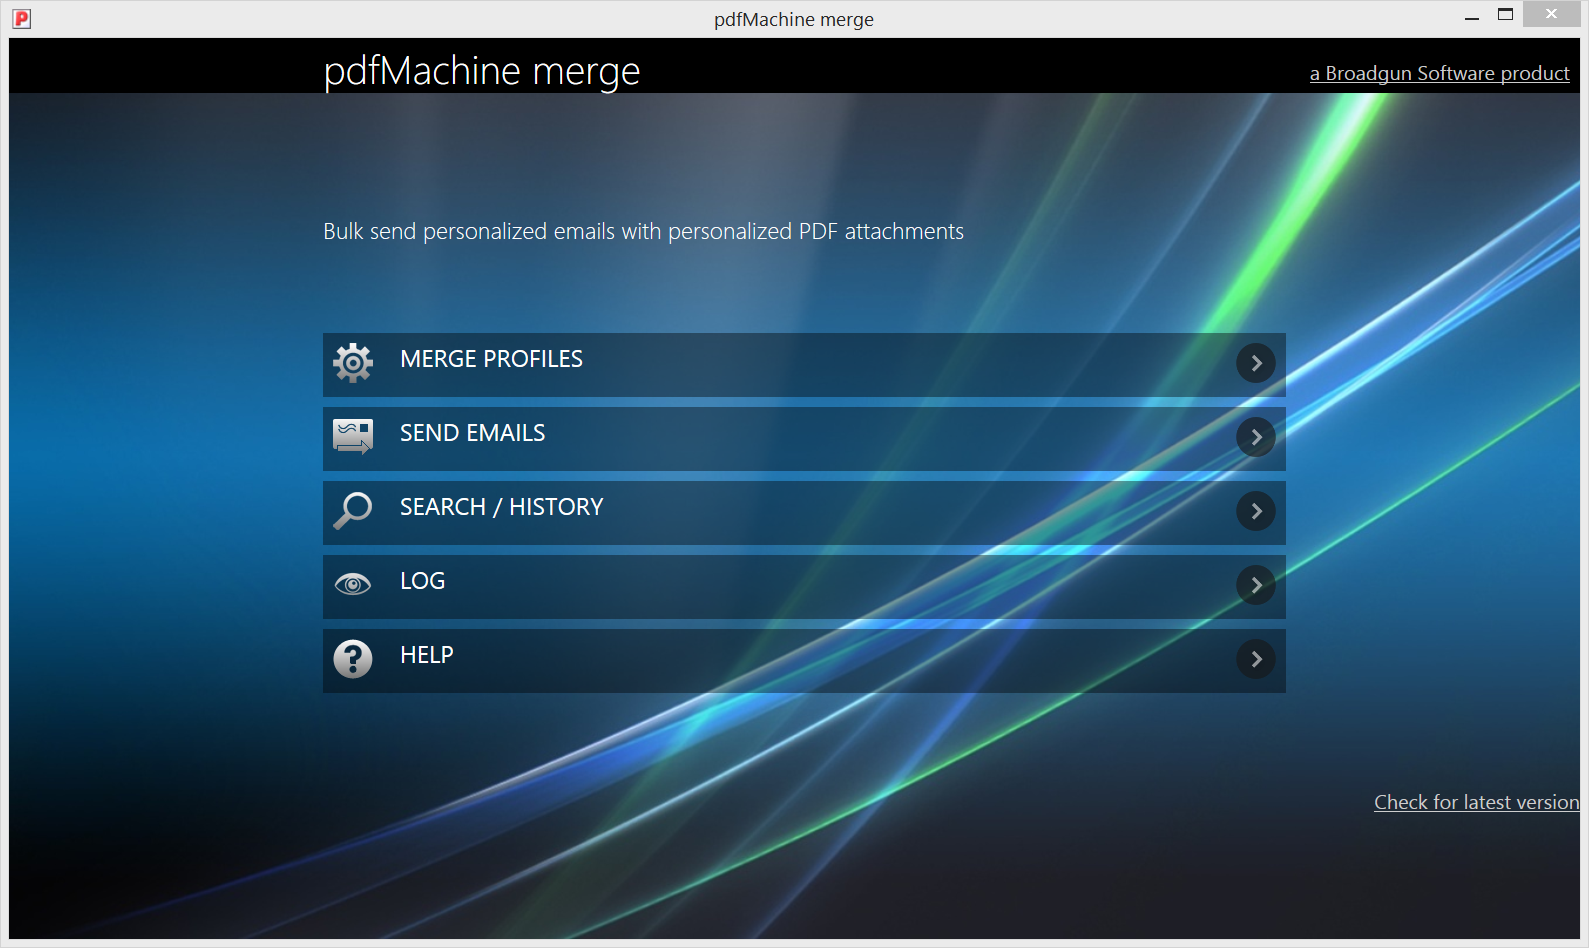 Windows 7 pdfMachine merge 1.0.4496.22439 full